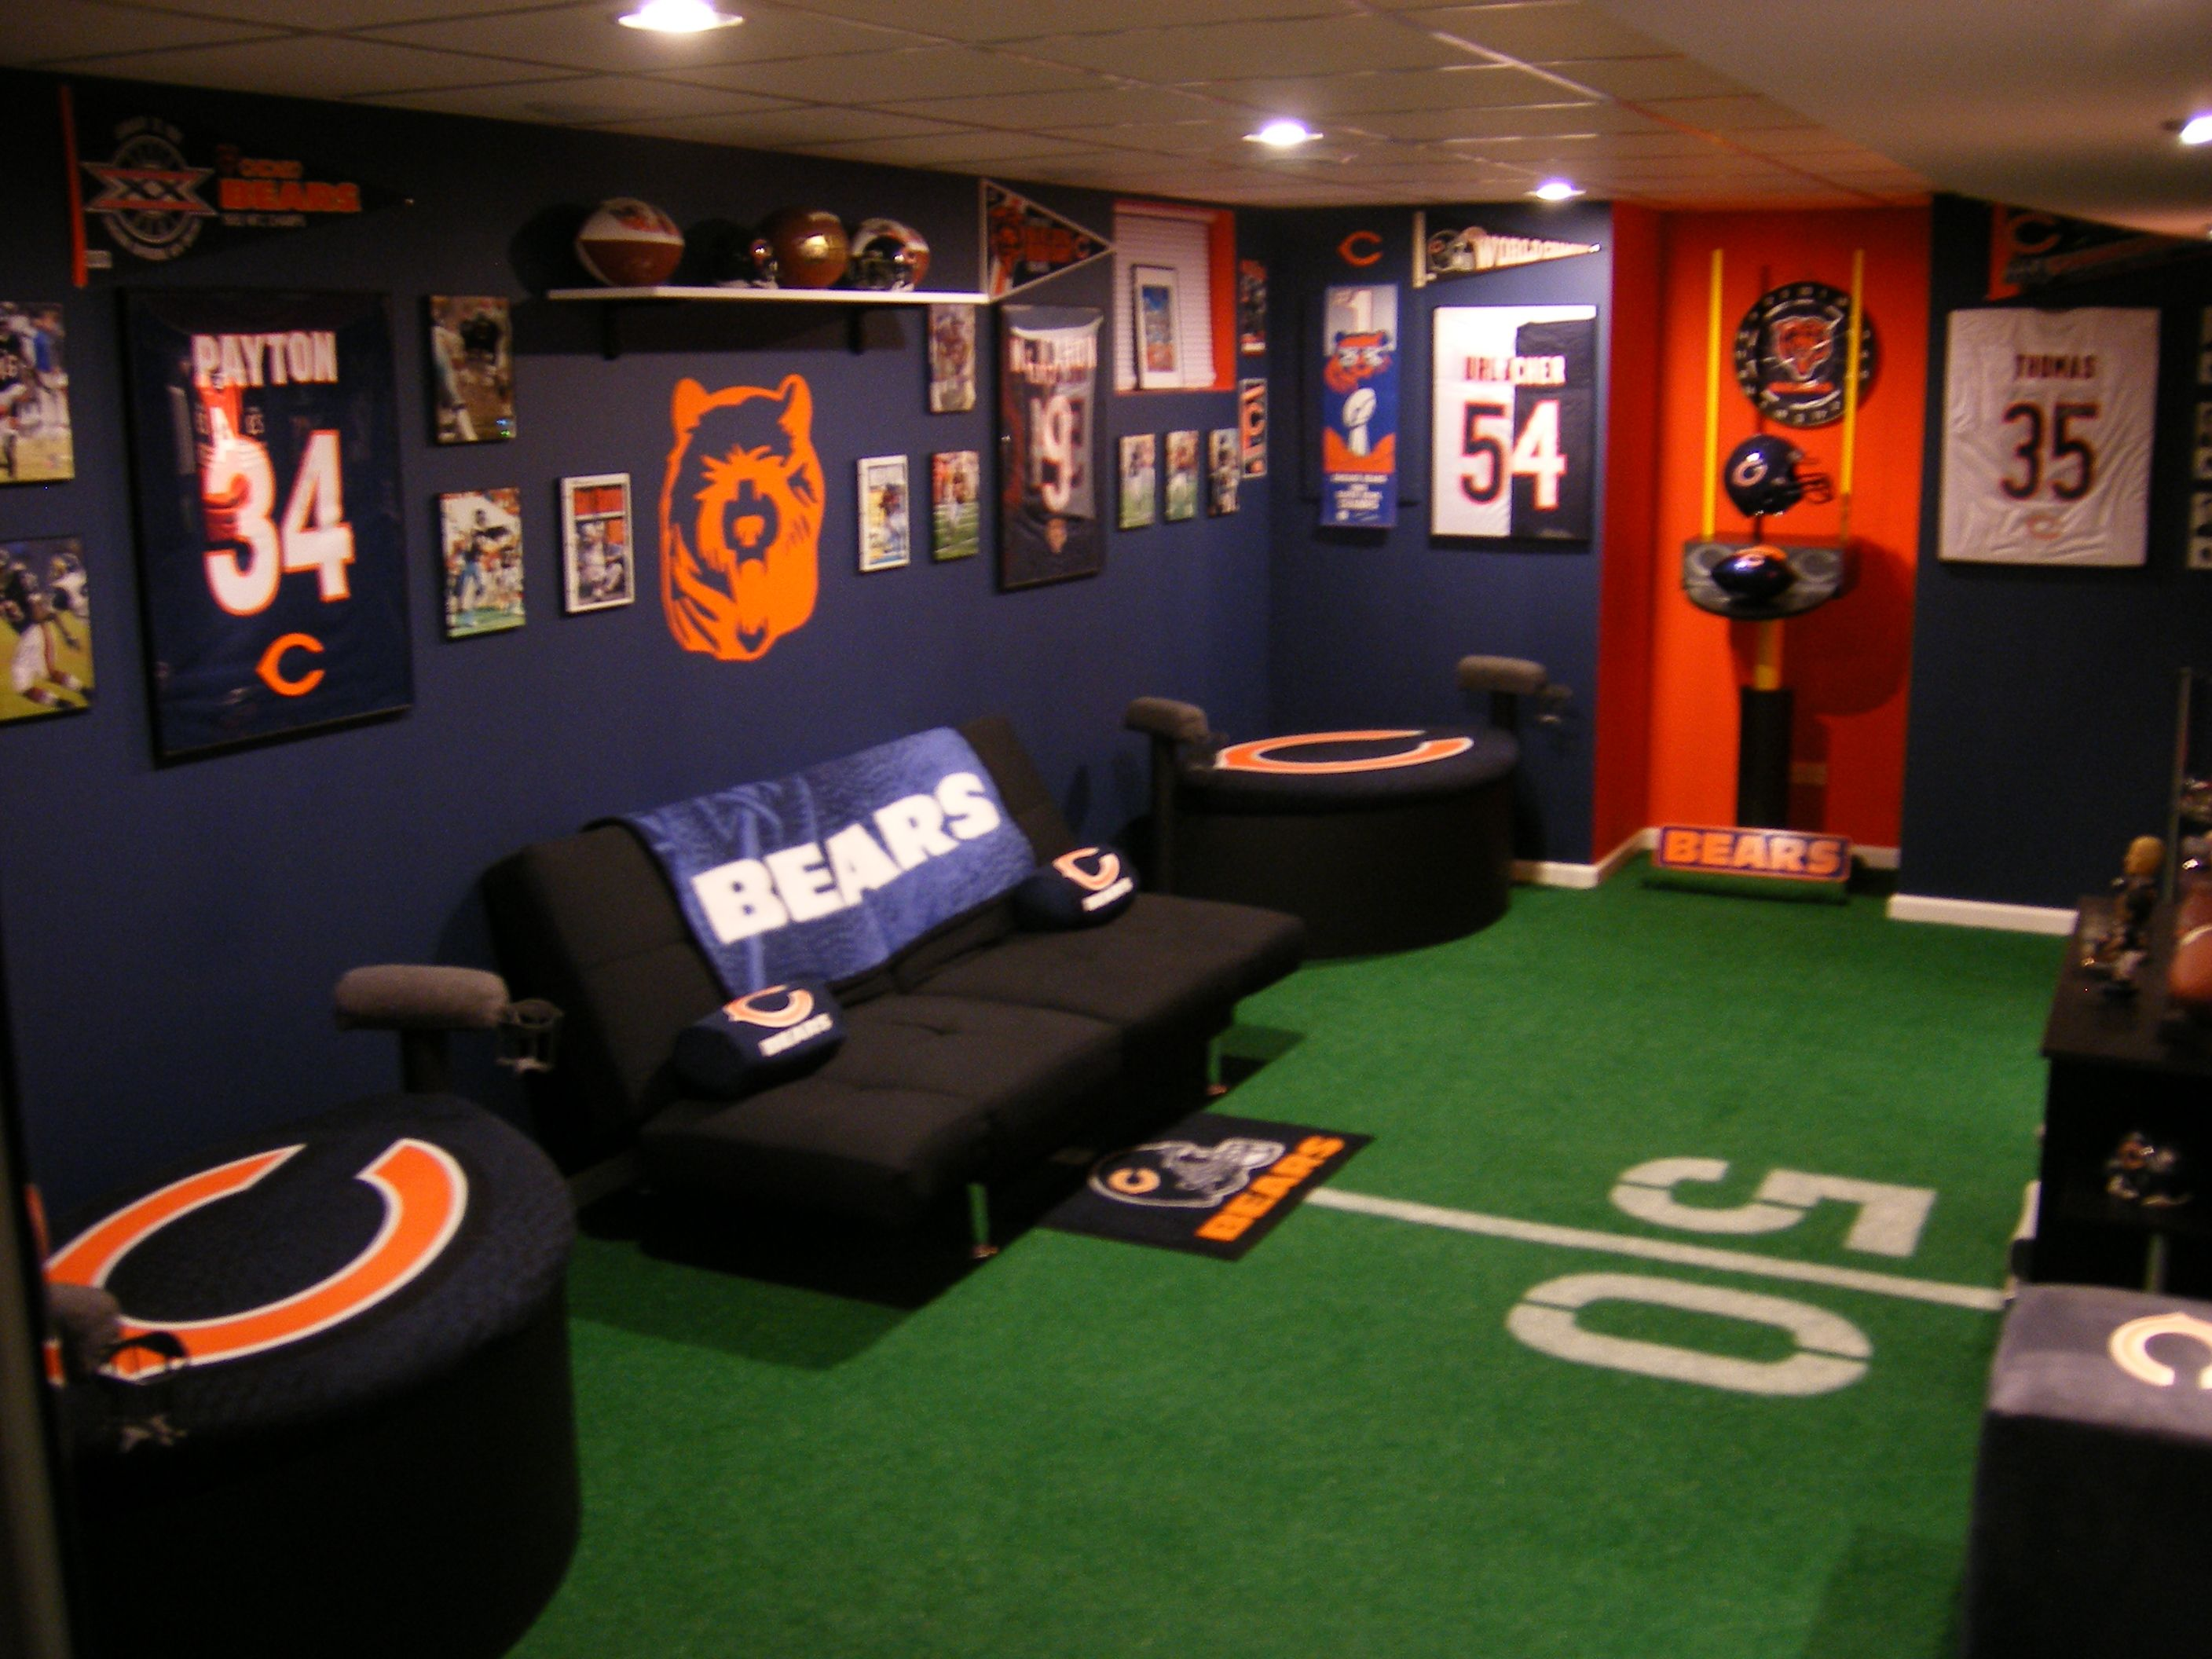 Best man cave installation ideas 23 - Cool Man Cave Ideas Thread Post Pics Of Your Man Cave Media Rooms